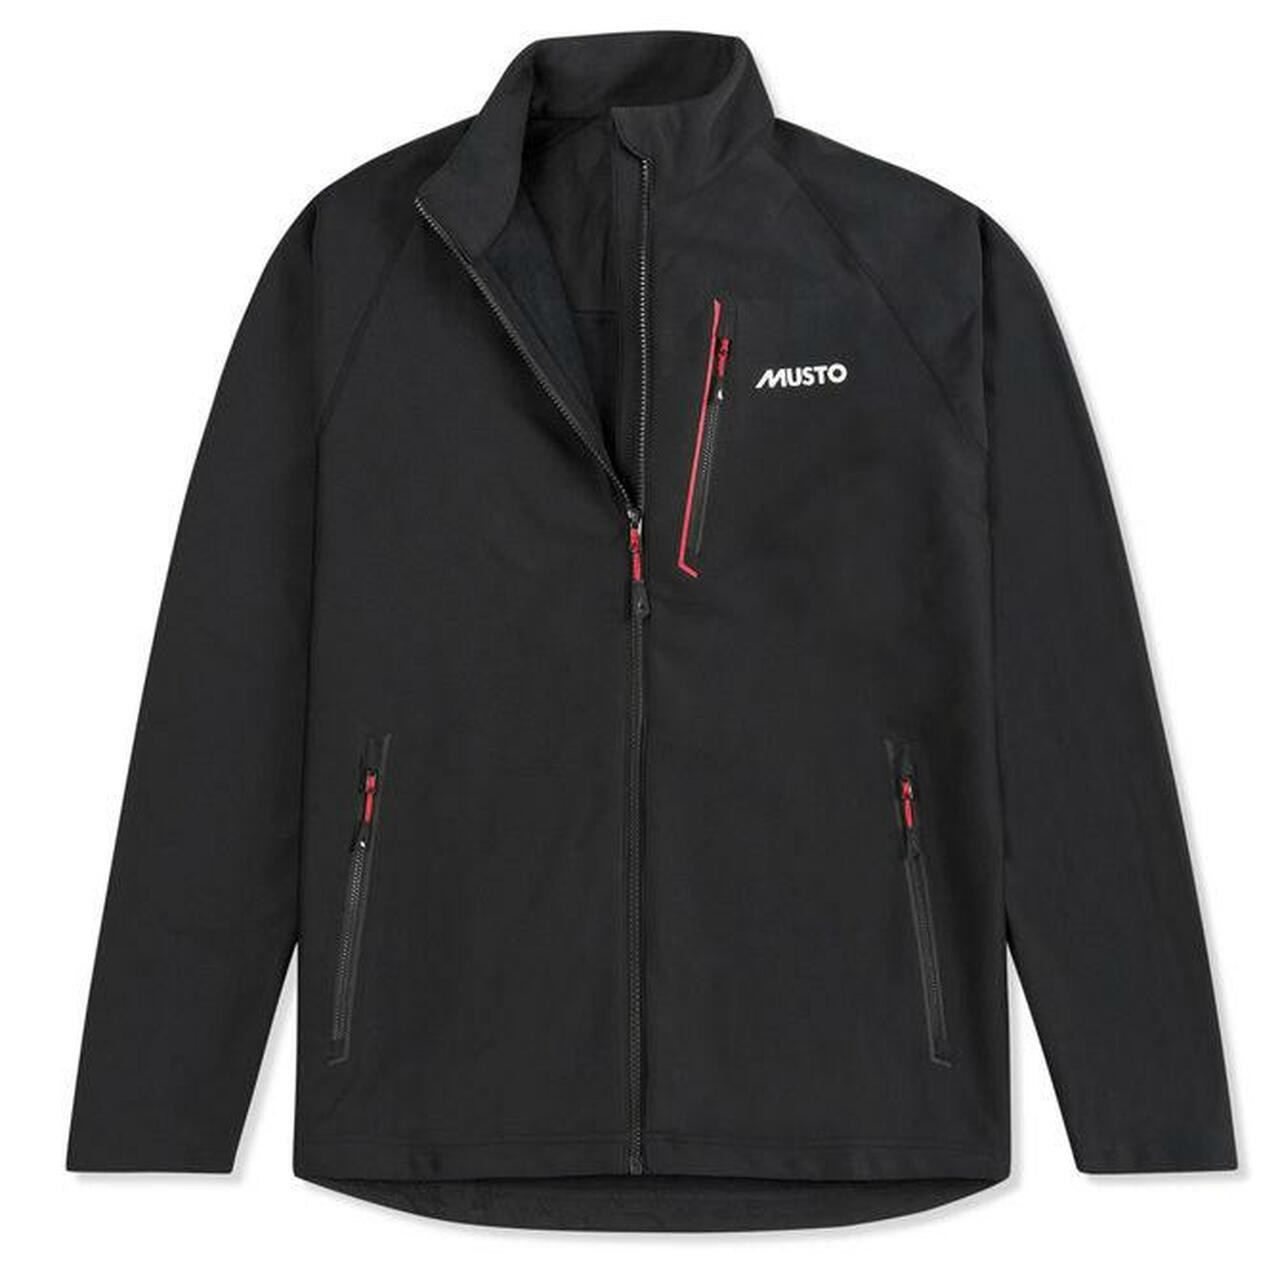 Musto Frome Mid Layer Jacket - Black